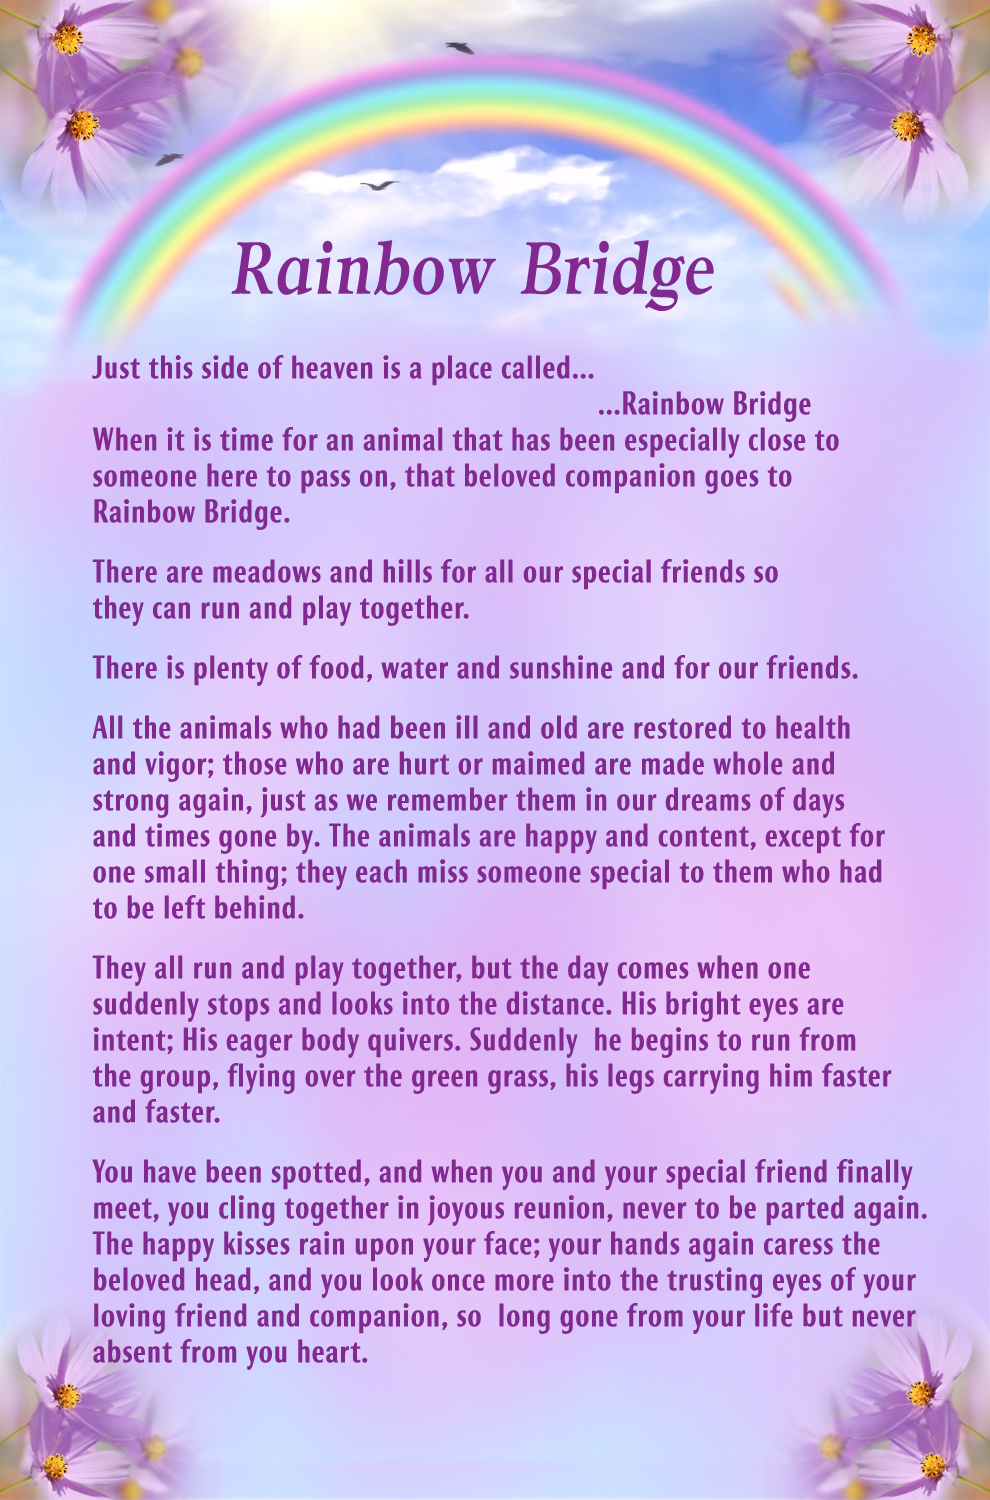 picture about Poem Rainbow Bridge Printable named About The Rainbow Bridge Printable - Suitable Bridge In just The Worldwide